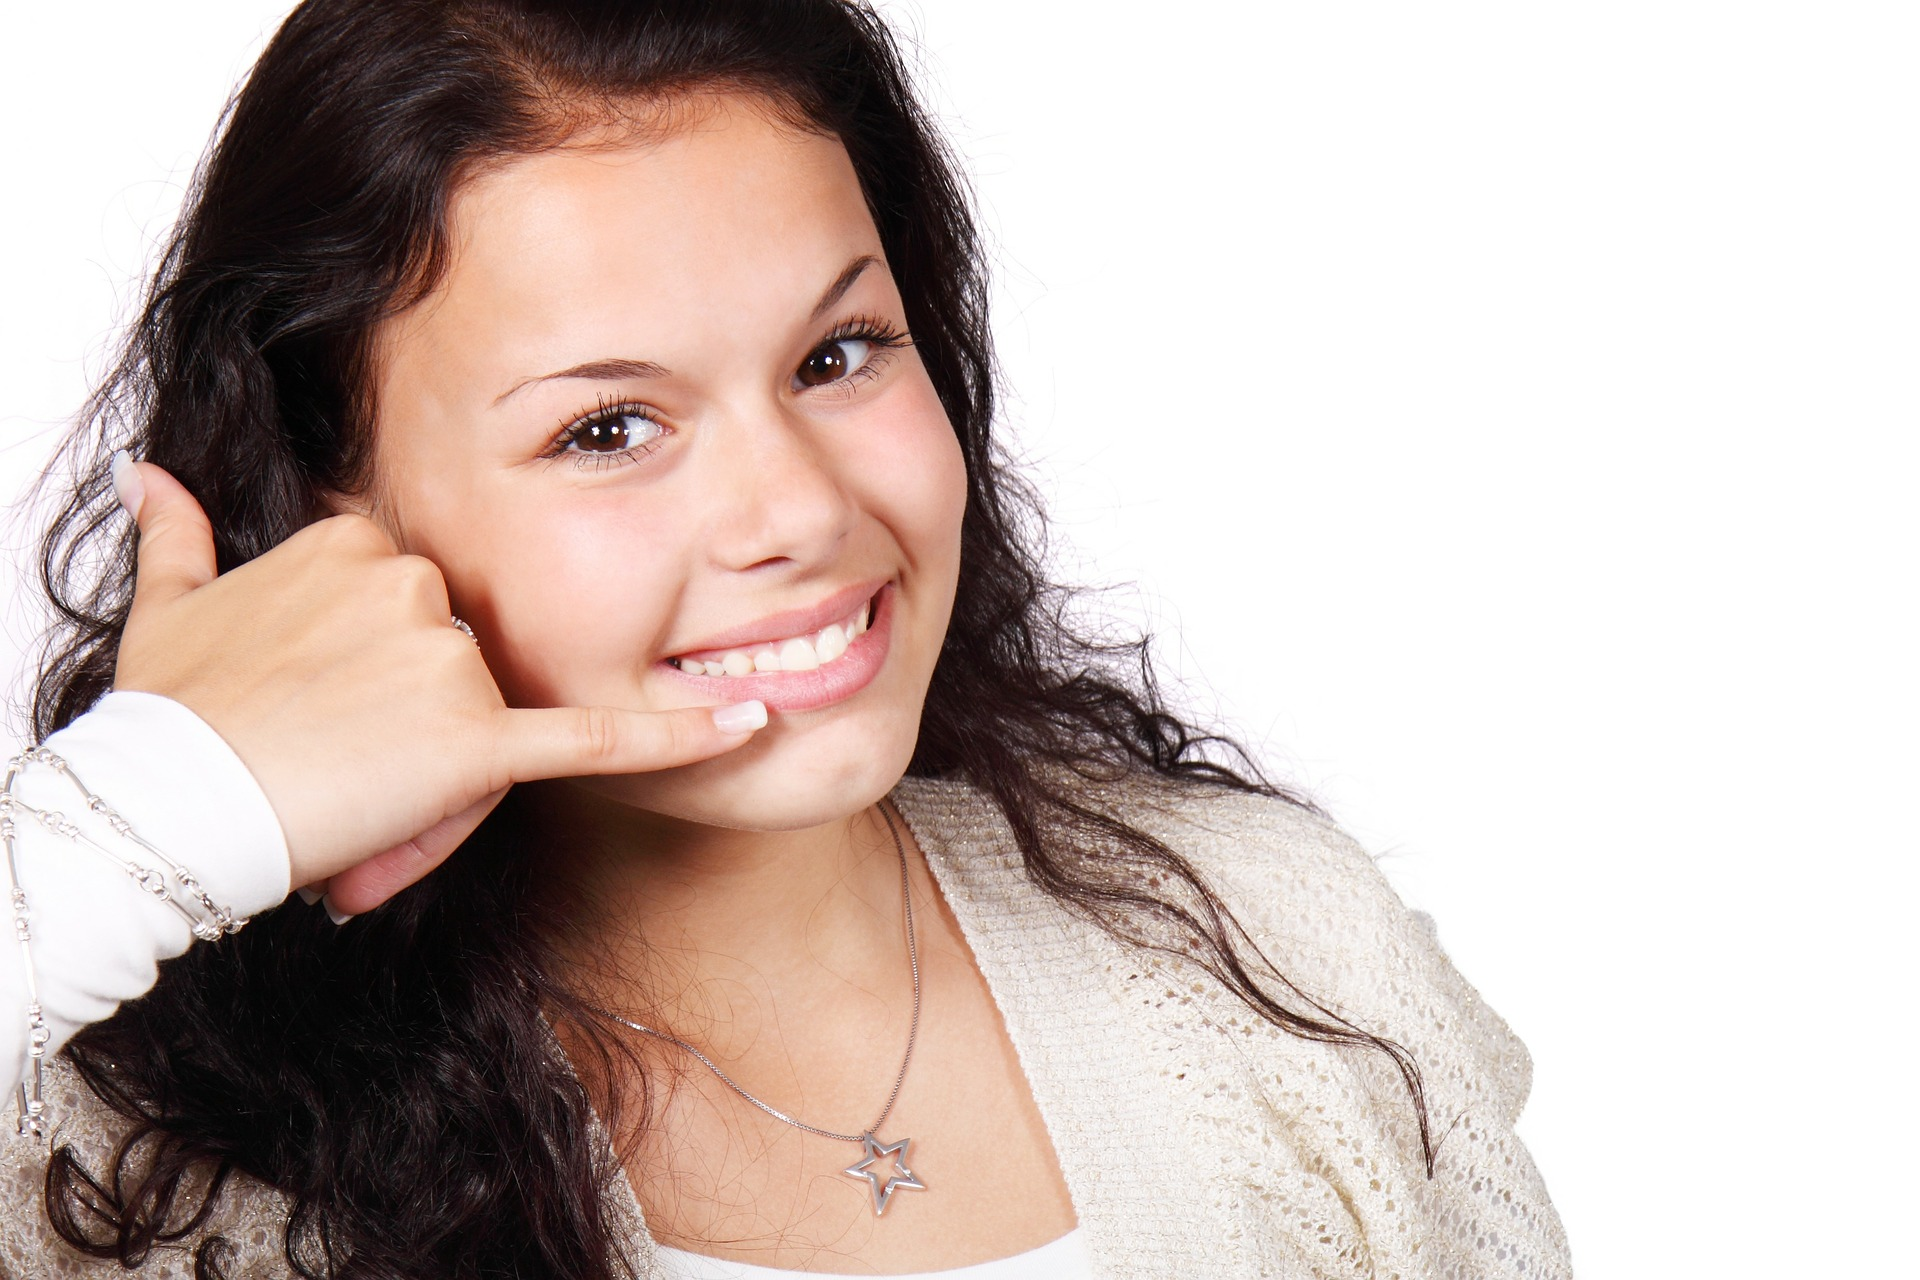 Girl making a phone gesture with her hand